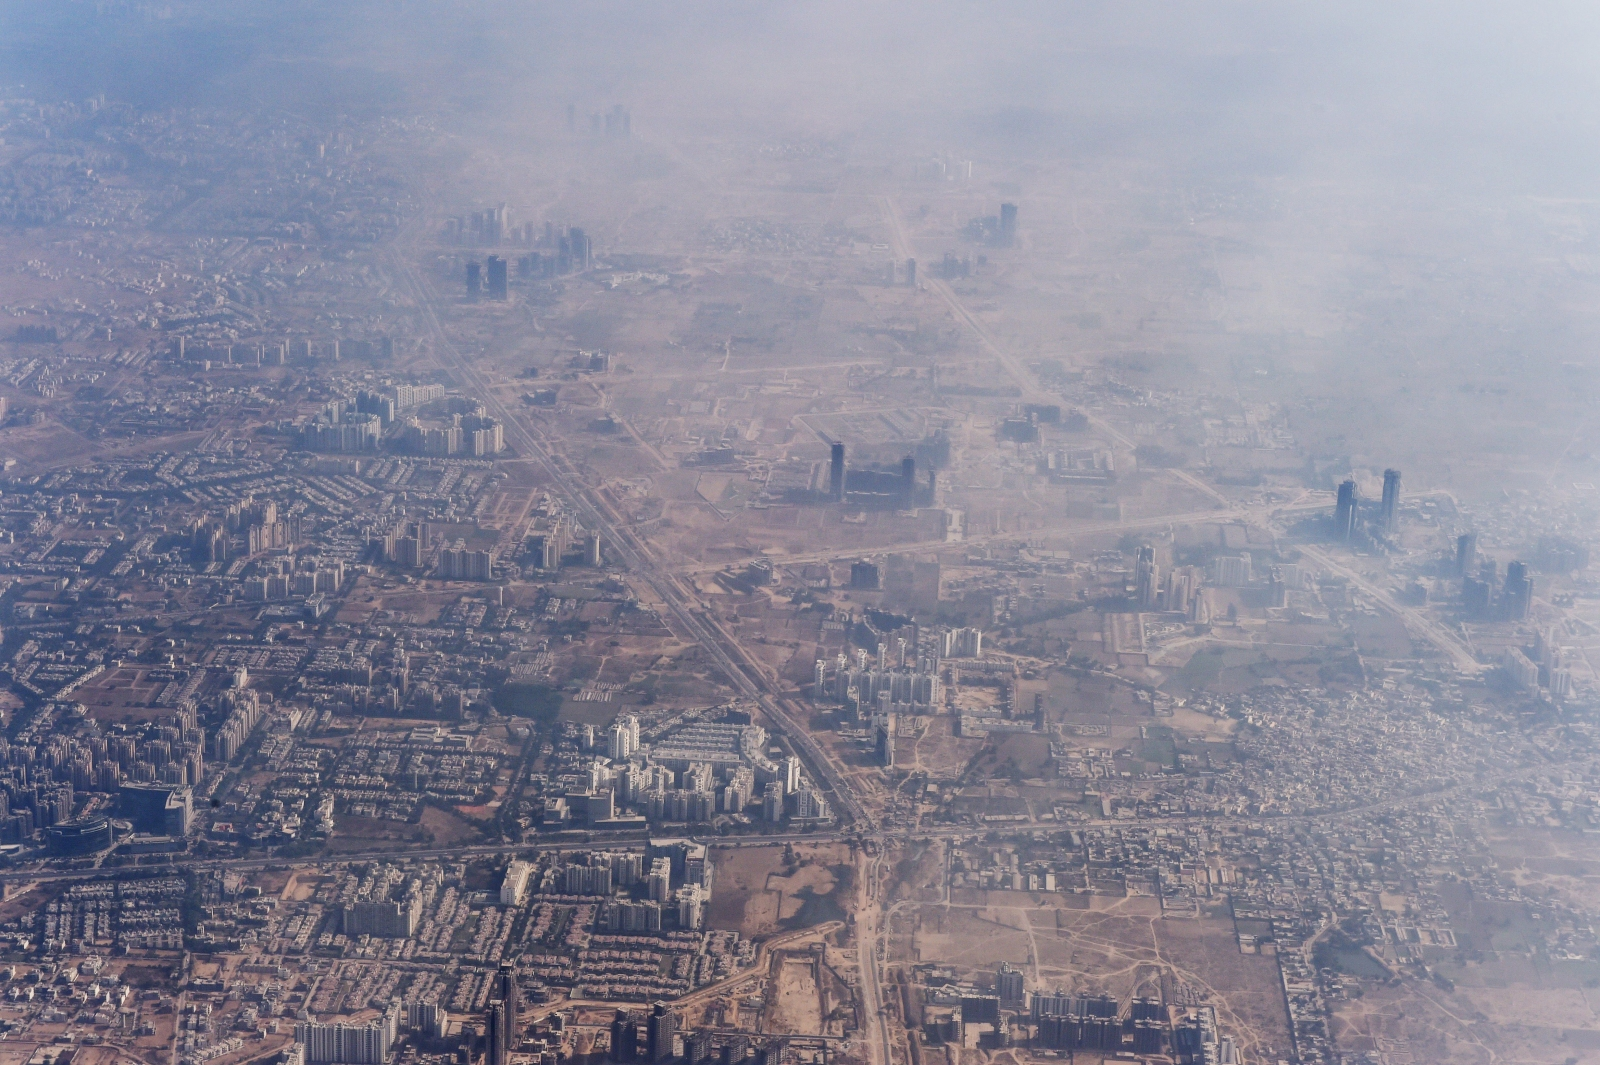 the consequences of air pollution in the modern world Humans are also regularly harmed by pollution long-term exposure to air pollution, for example, can lead to chronic respiratory disease, lung cancer and other diseases human life possible are polluting the world even places that are relatively untouched by 21st-century developments experience the effects of pollution.